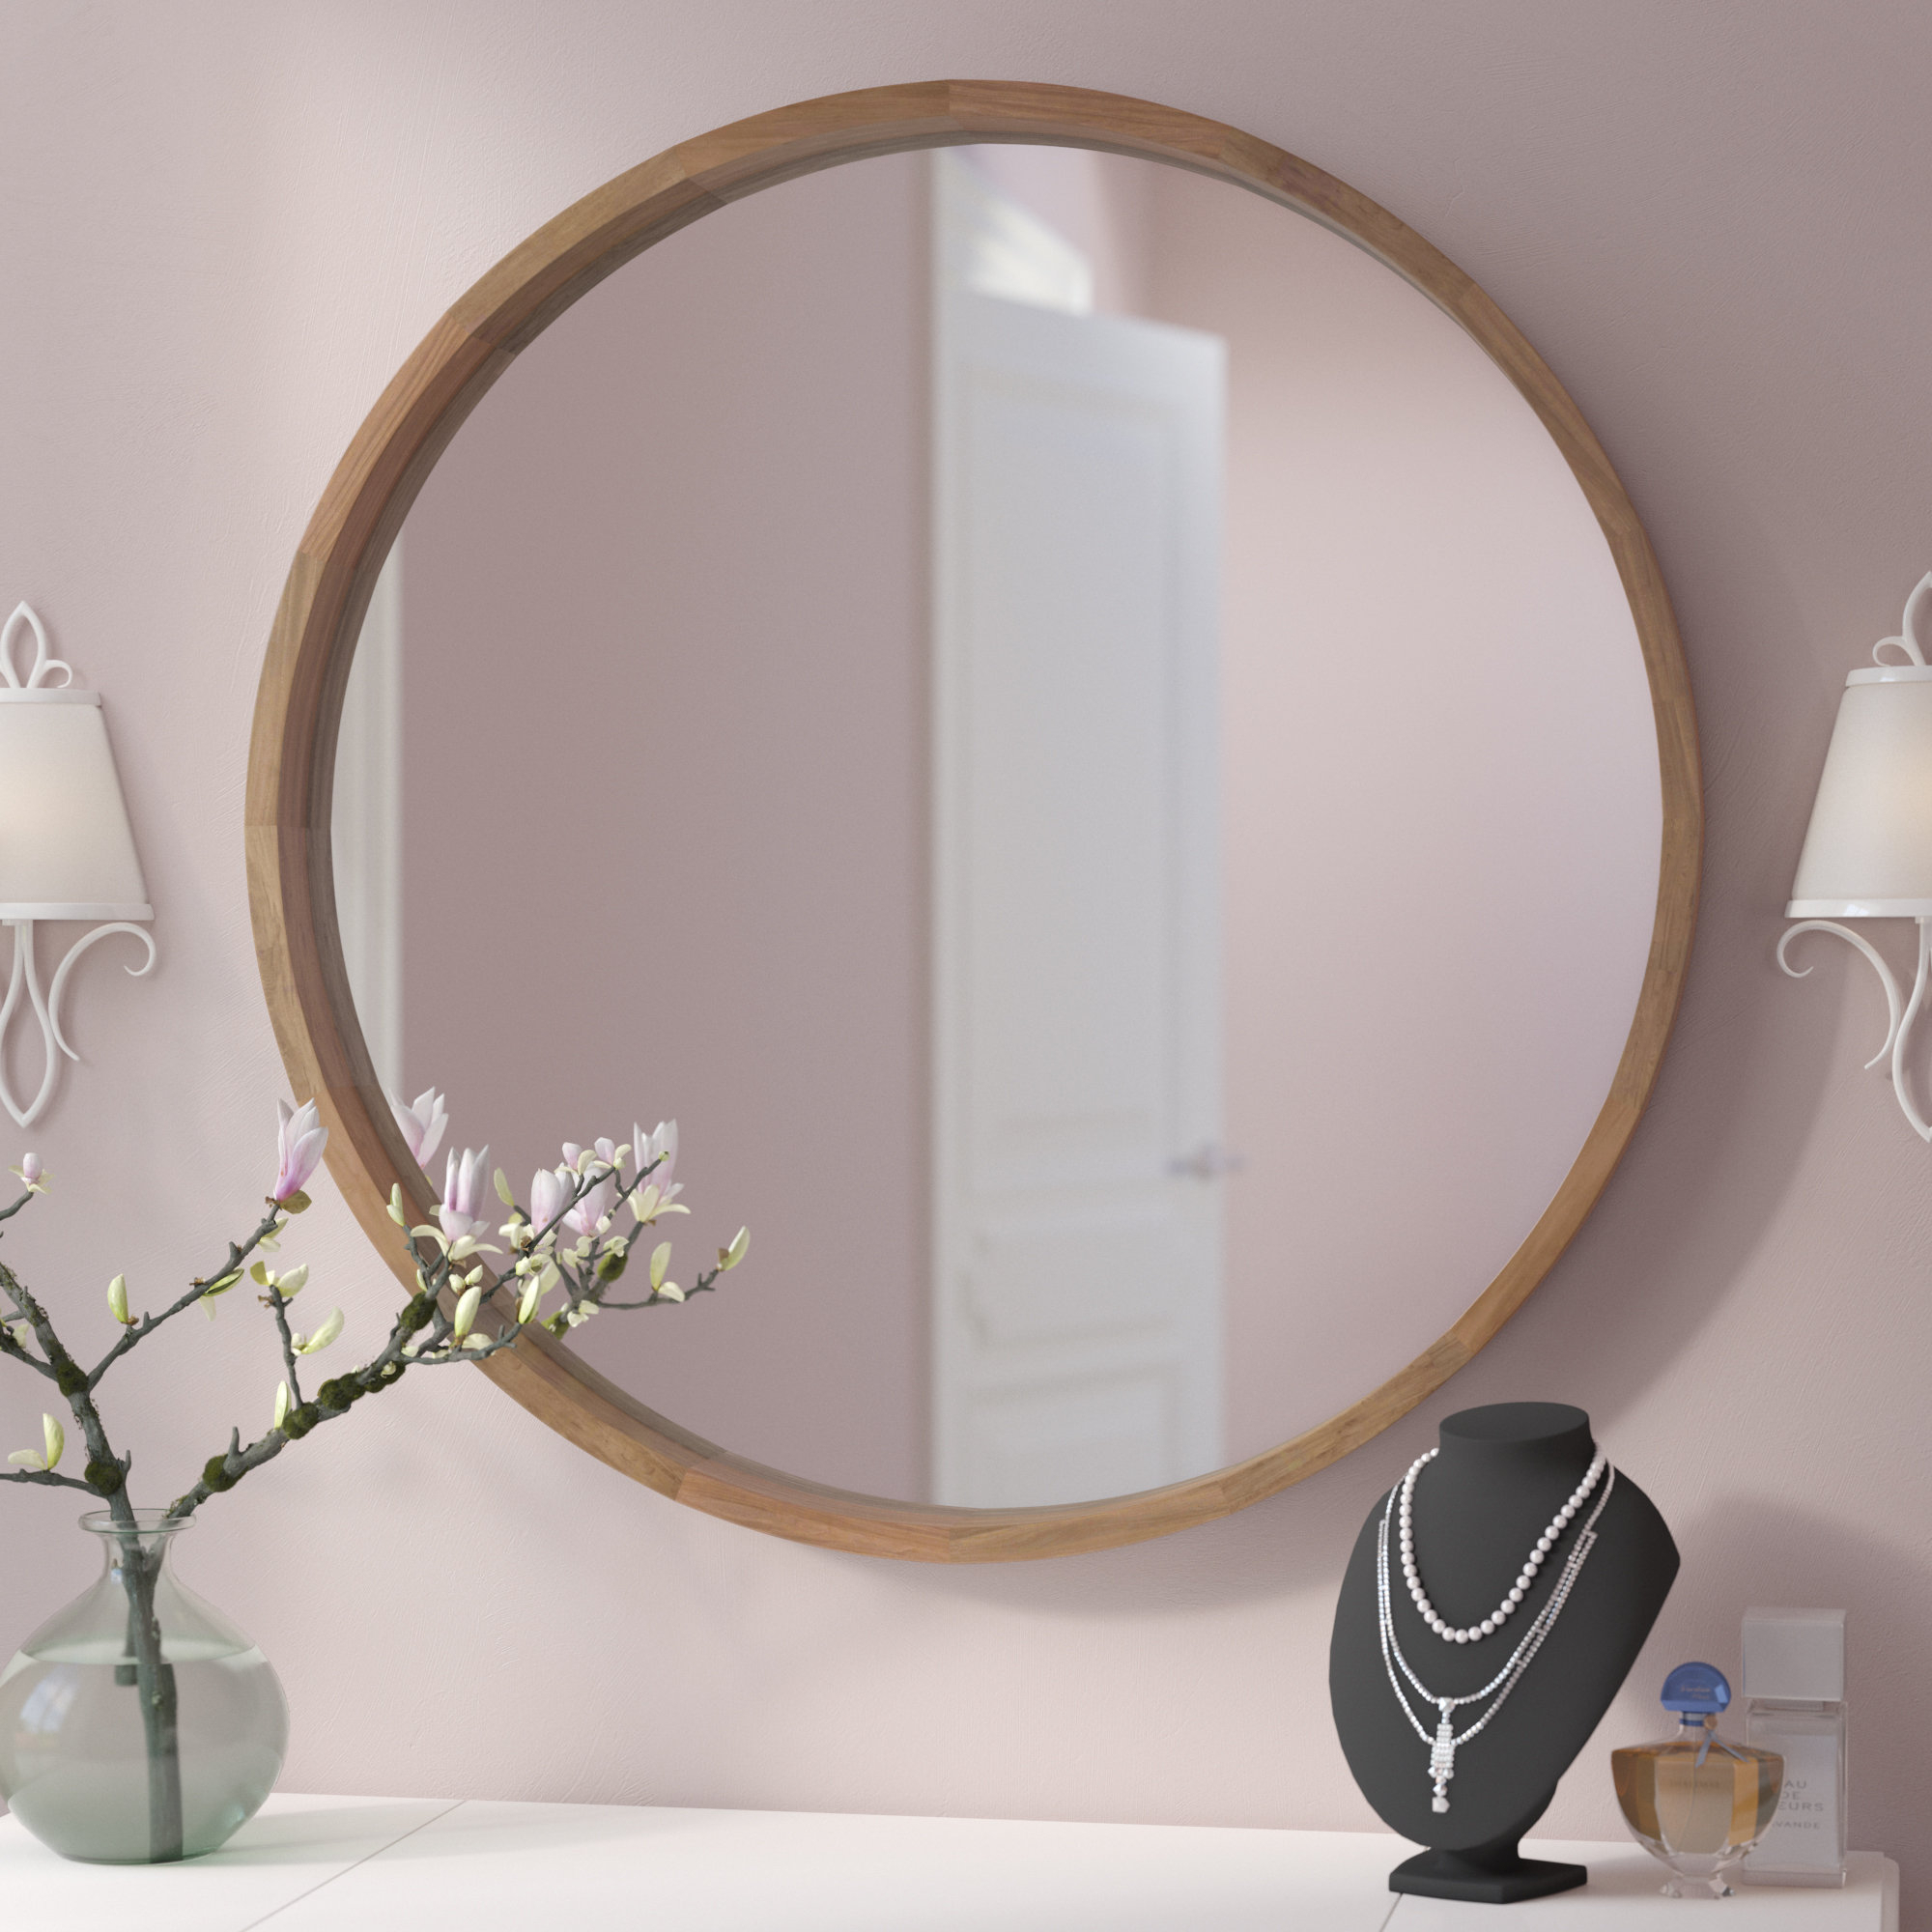 Modern & Contemporary Wall Mirror With Hooks | Allmodern Inside Gaunts Earthcott Wall Mirrors (View 19 of 20)